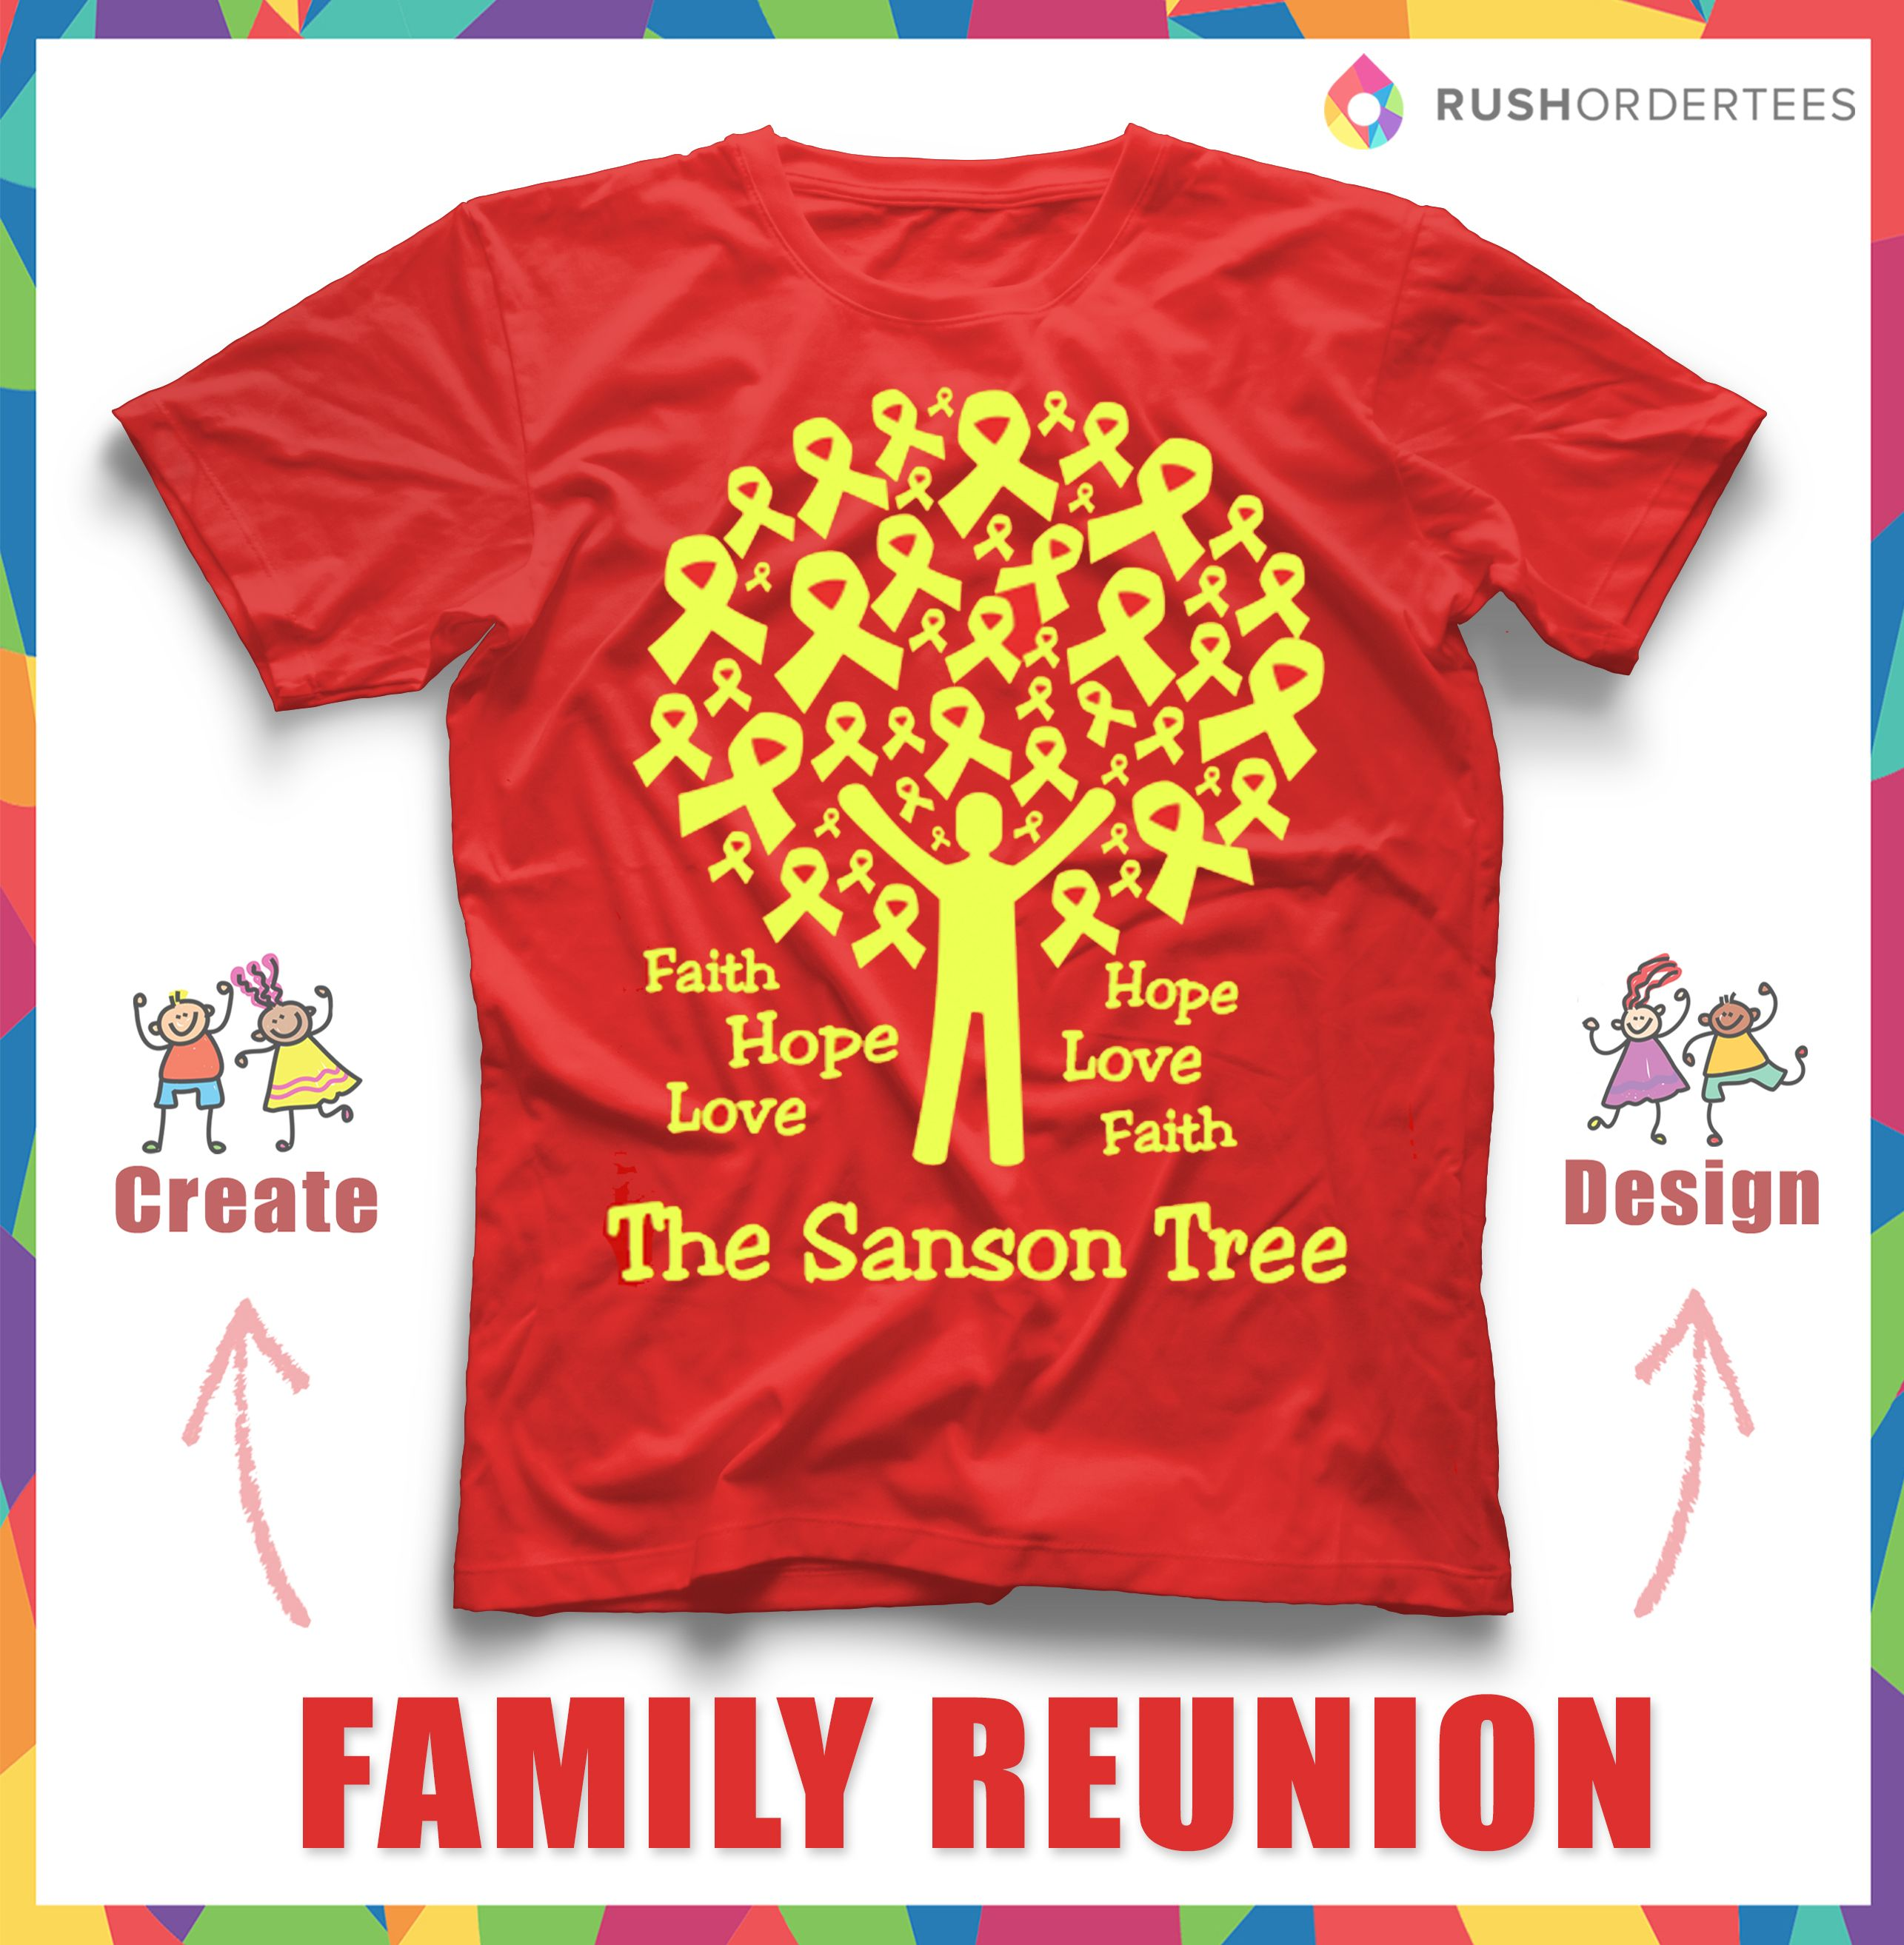 Design your own t-shirt game for free